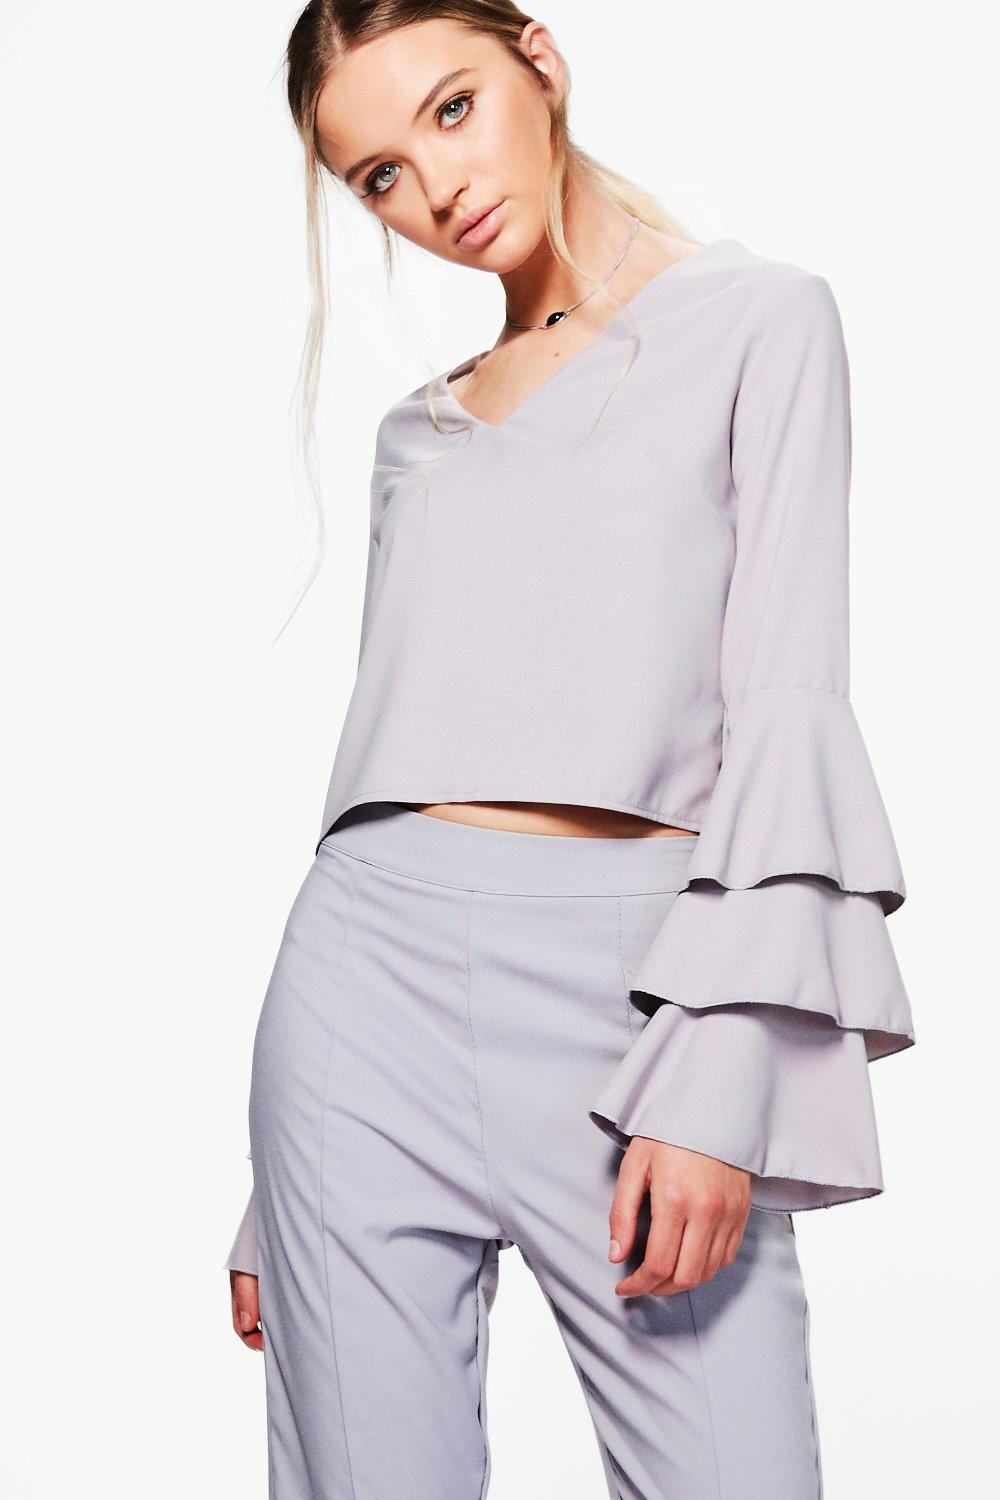 Boohoo-Vanessa-Top-Tisse-A-Manches-Volantees-pour-Femme